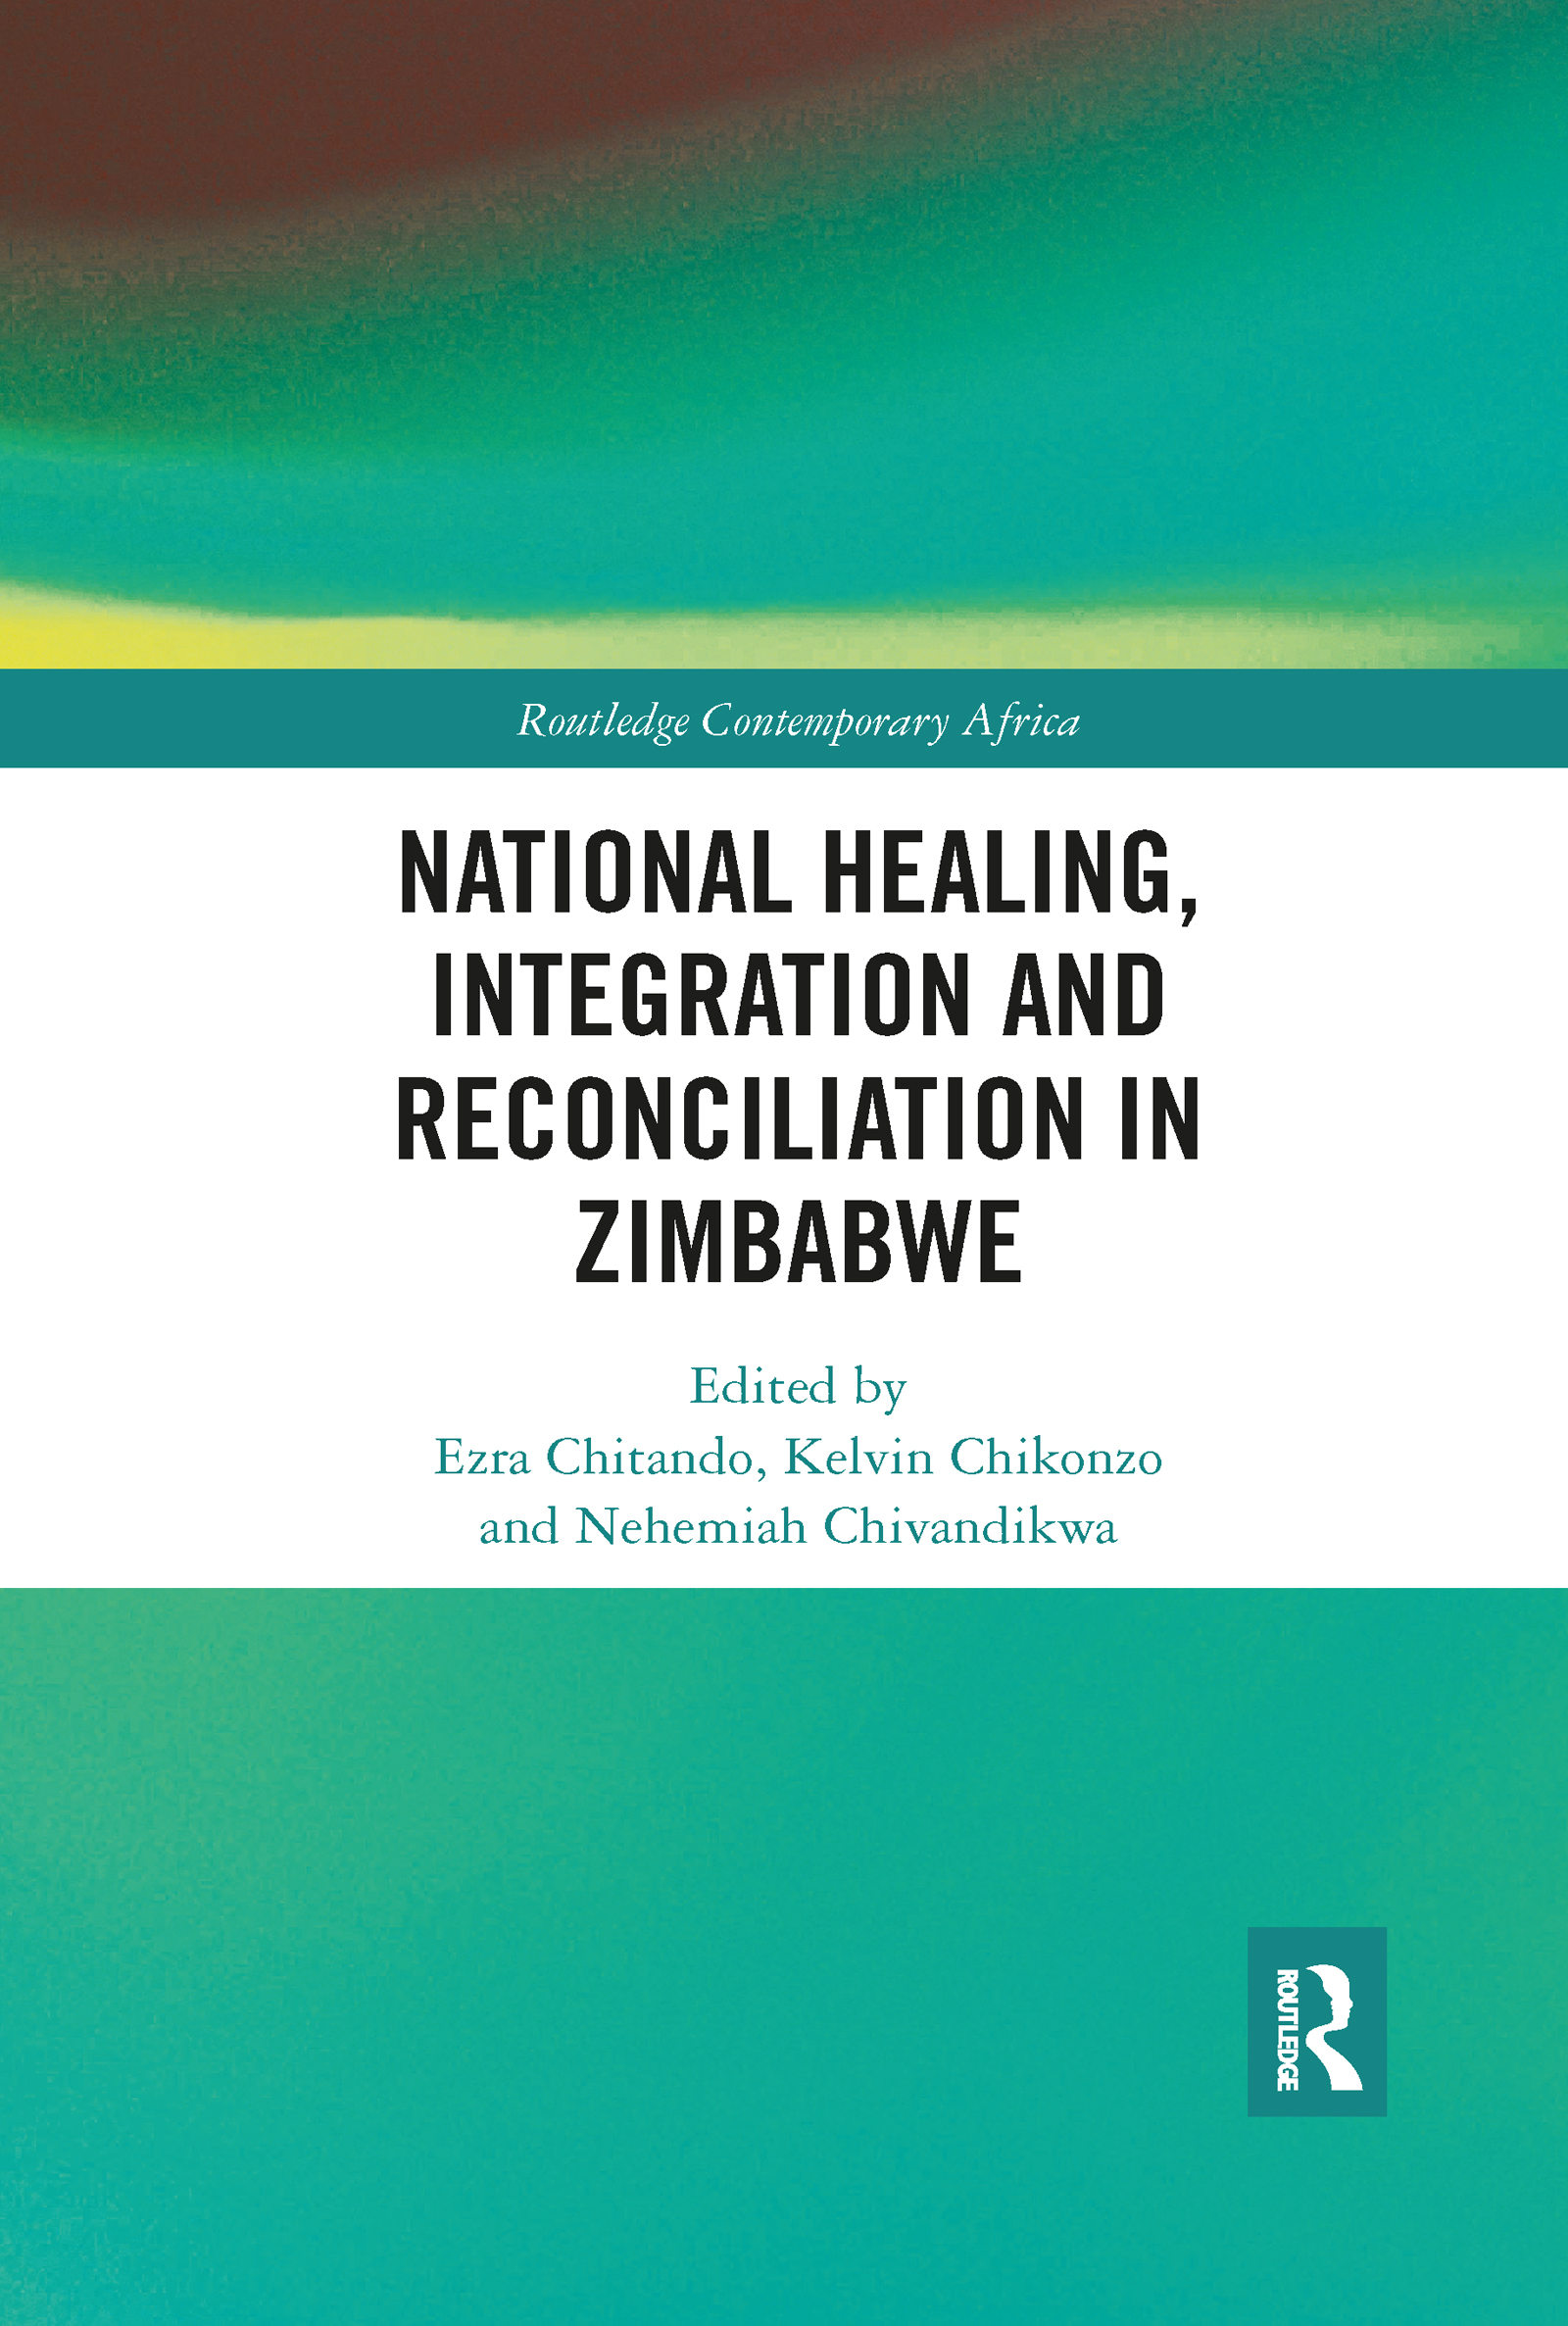 National Healing, Integration and Reconciliation in Zimbabwe